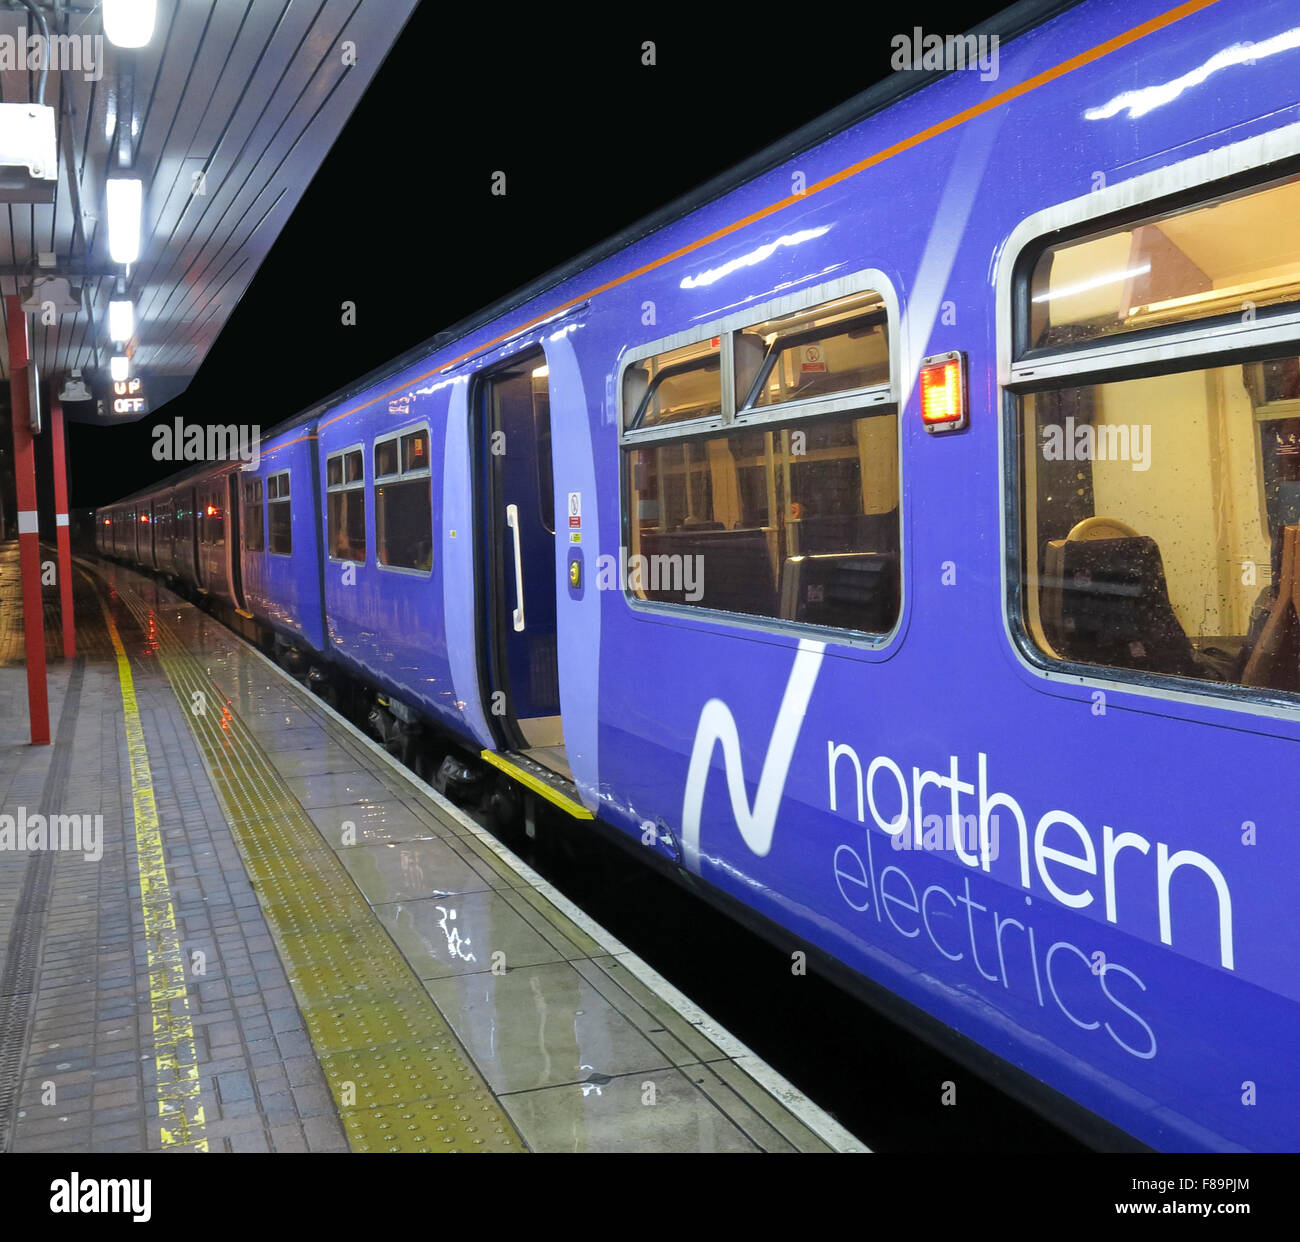 Northern Electric Trains at Wigan North Western Station, Lancs,England, UK, 319375 - Stock Image